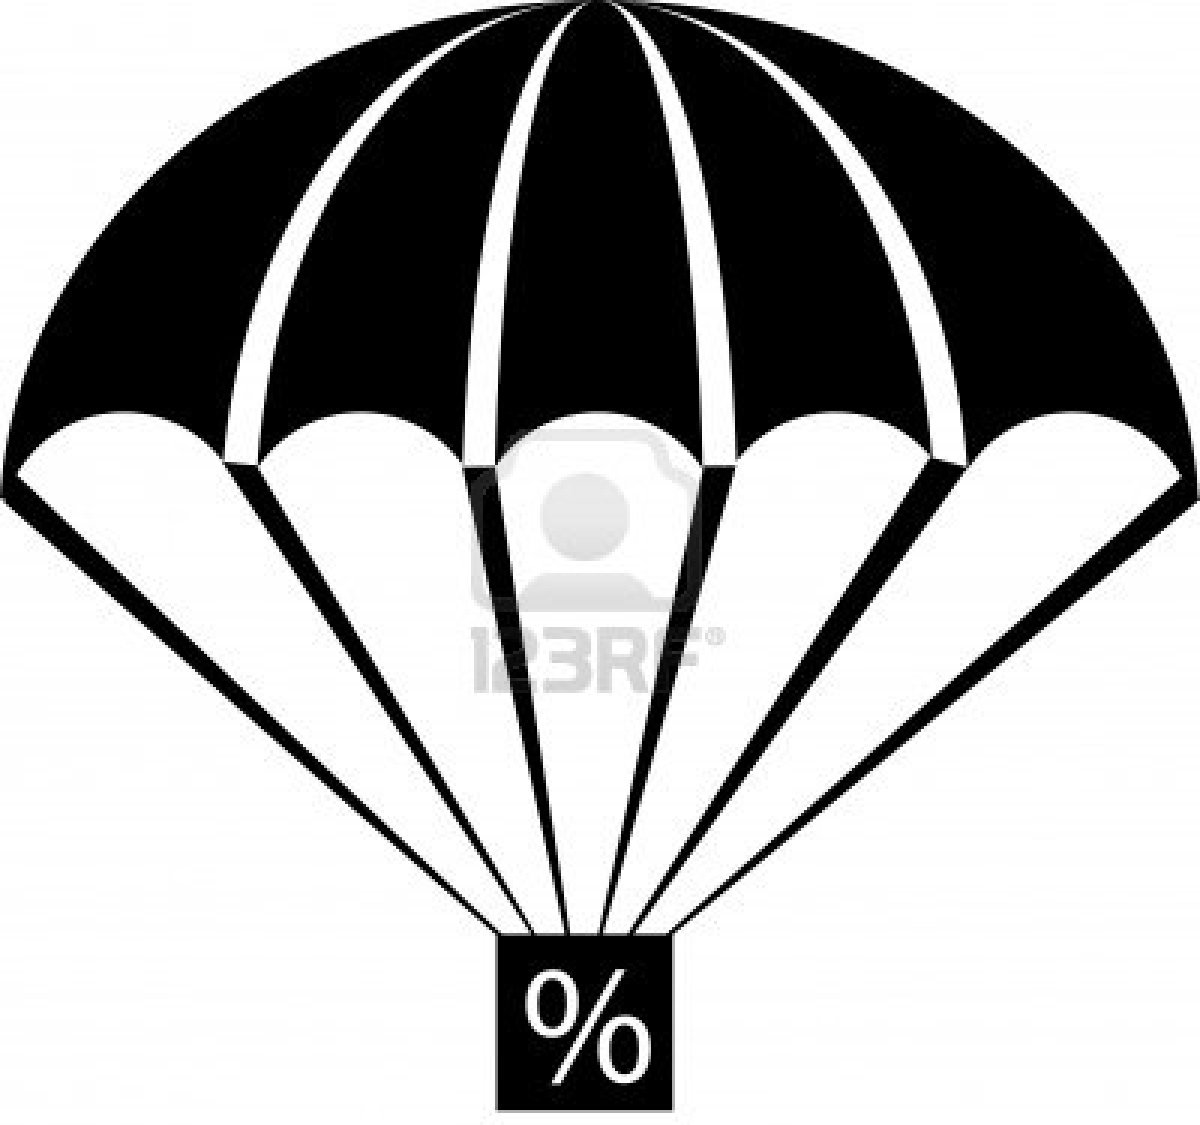 An Illustration With Parachute Percent